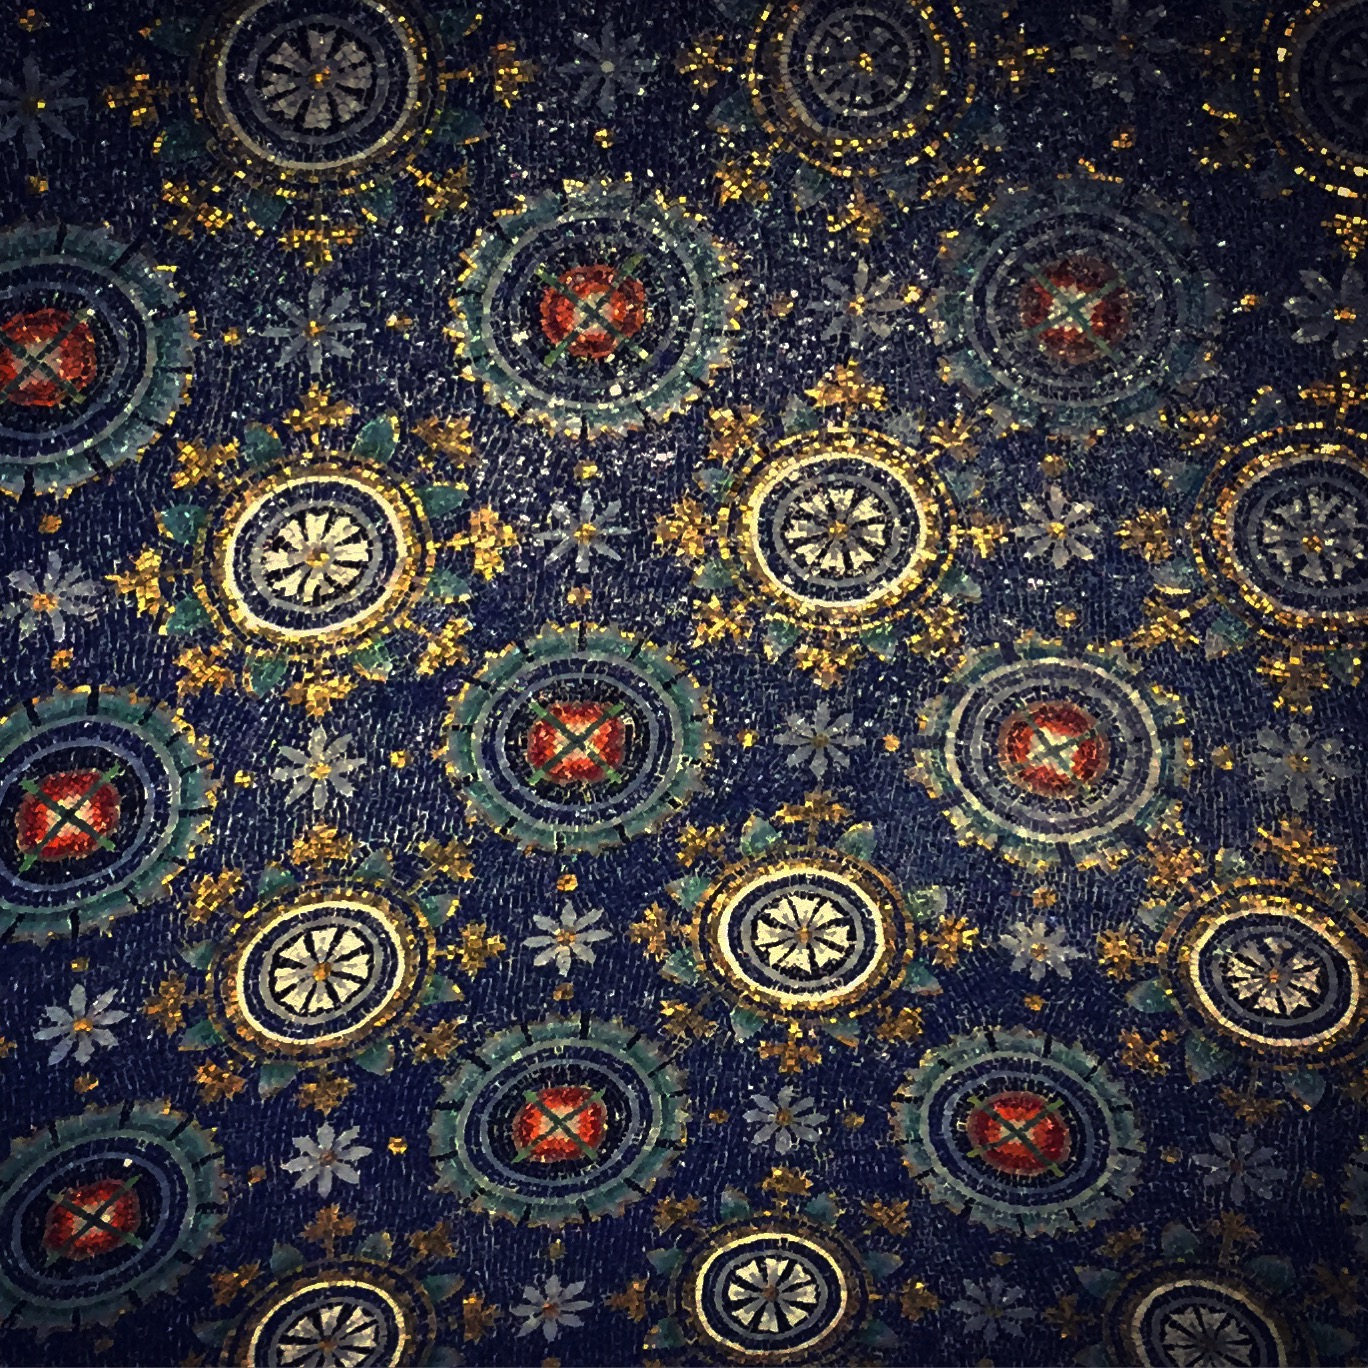 Mosaicked ceiling in the Mausoleum of Galla Placidia (Ravenna)